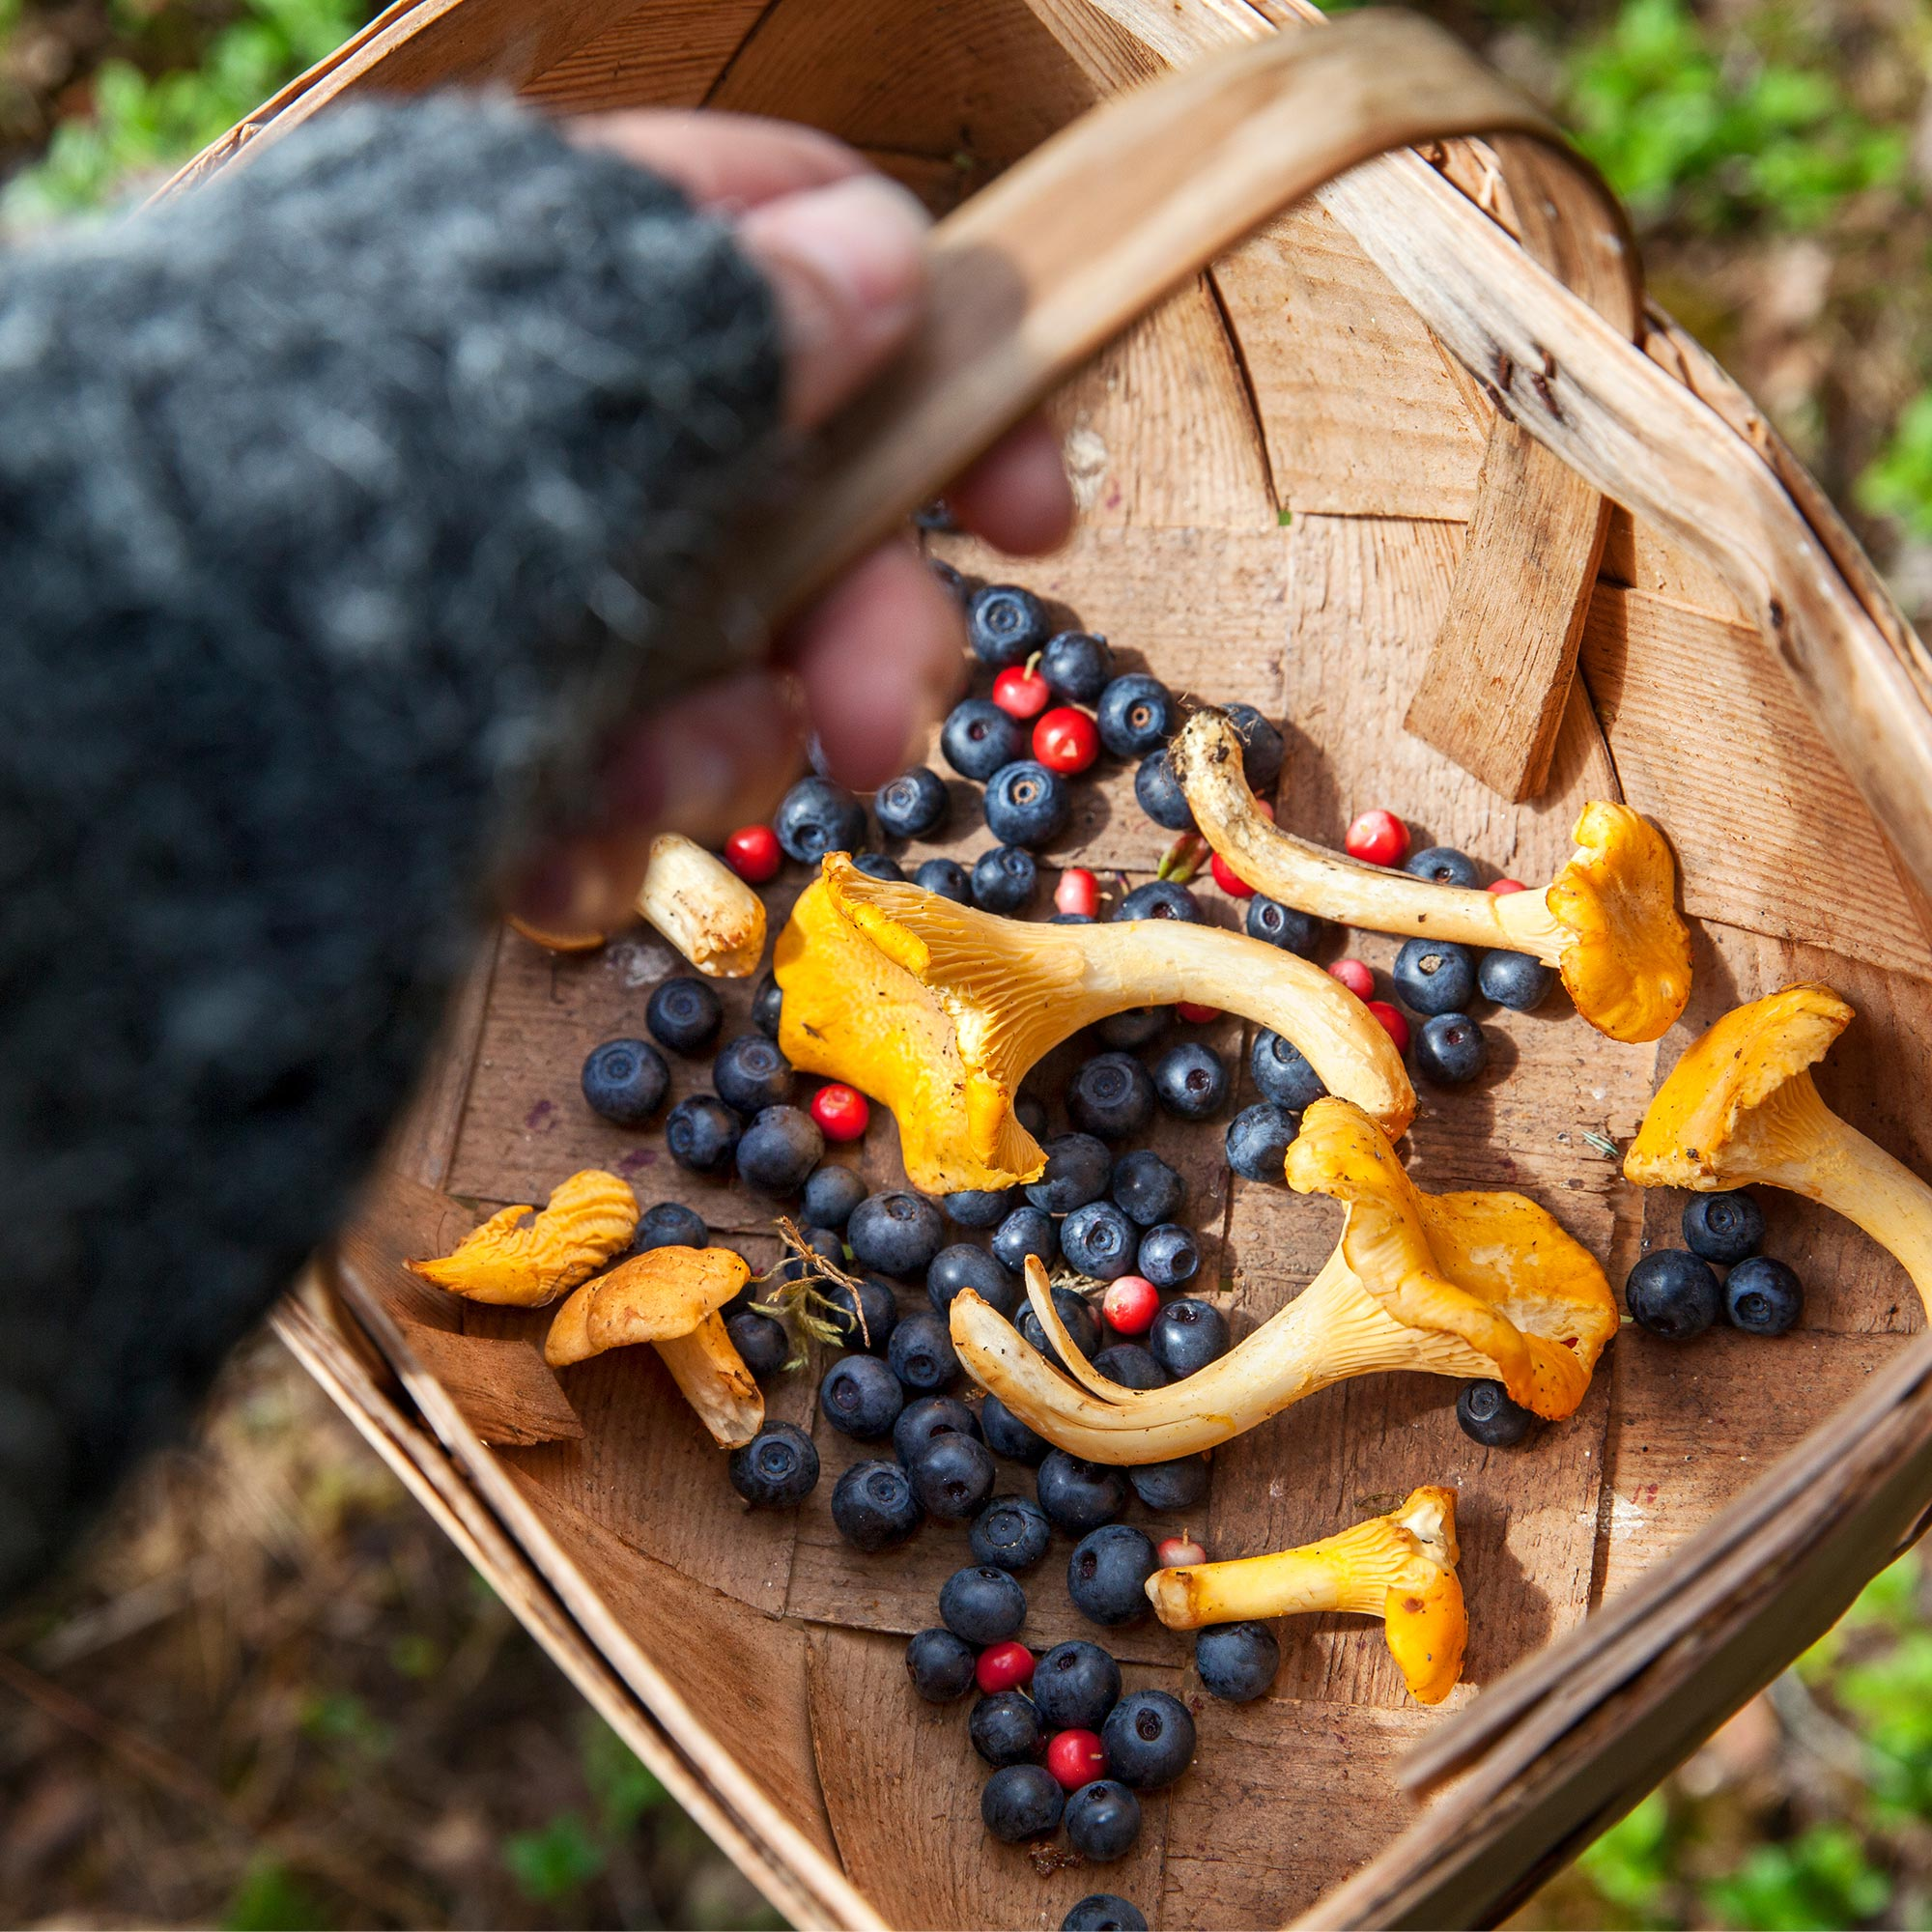 Child holding basket with berries and chanterelles.